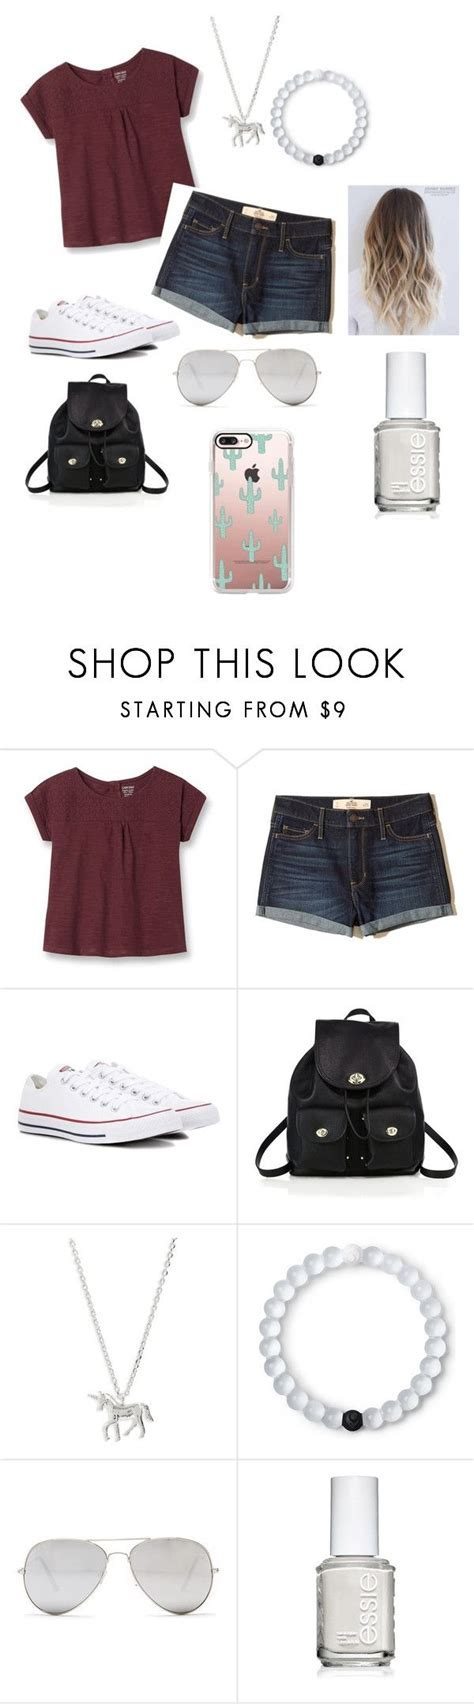 11 best Summer outfits annie leblanc images on Pinterest   Summer outfit Summer clothing and ...